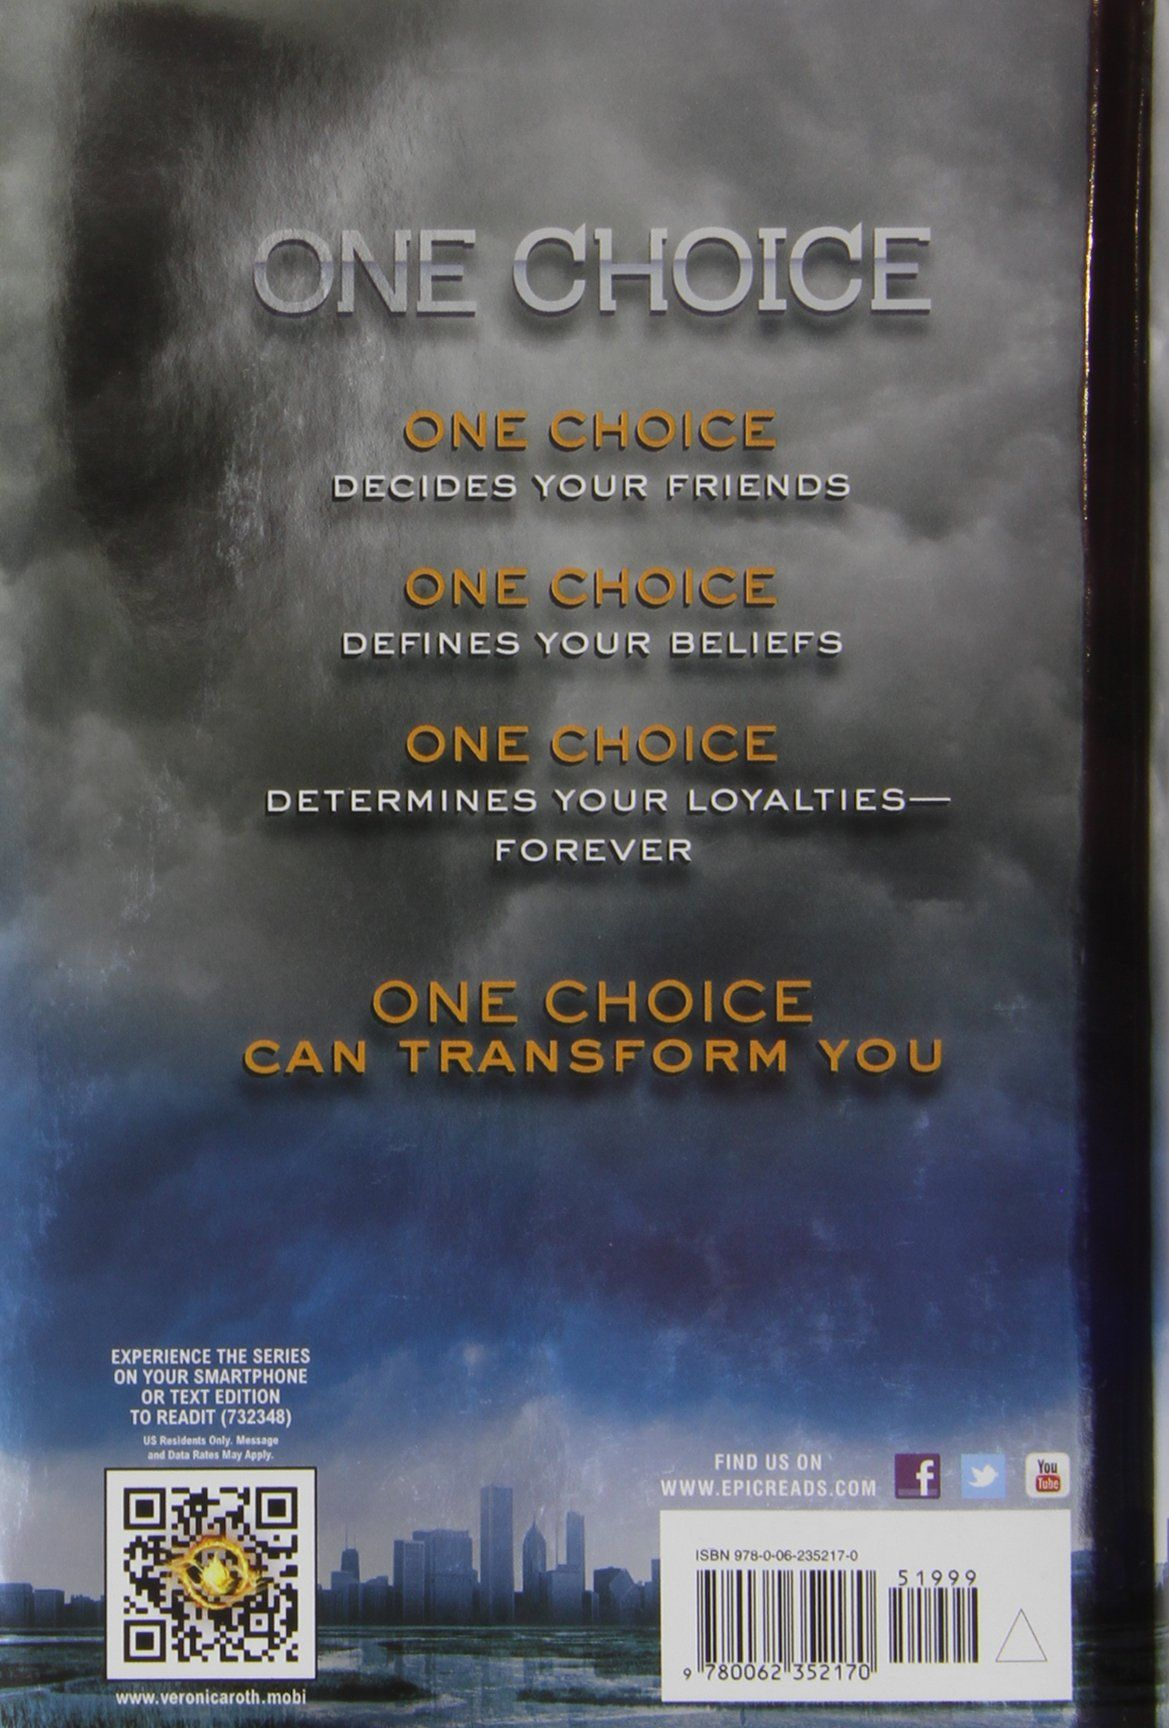 47+ Divergent four books in order ideas in 2021